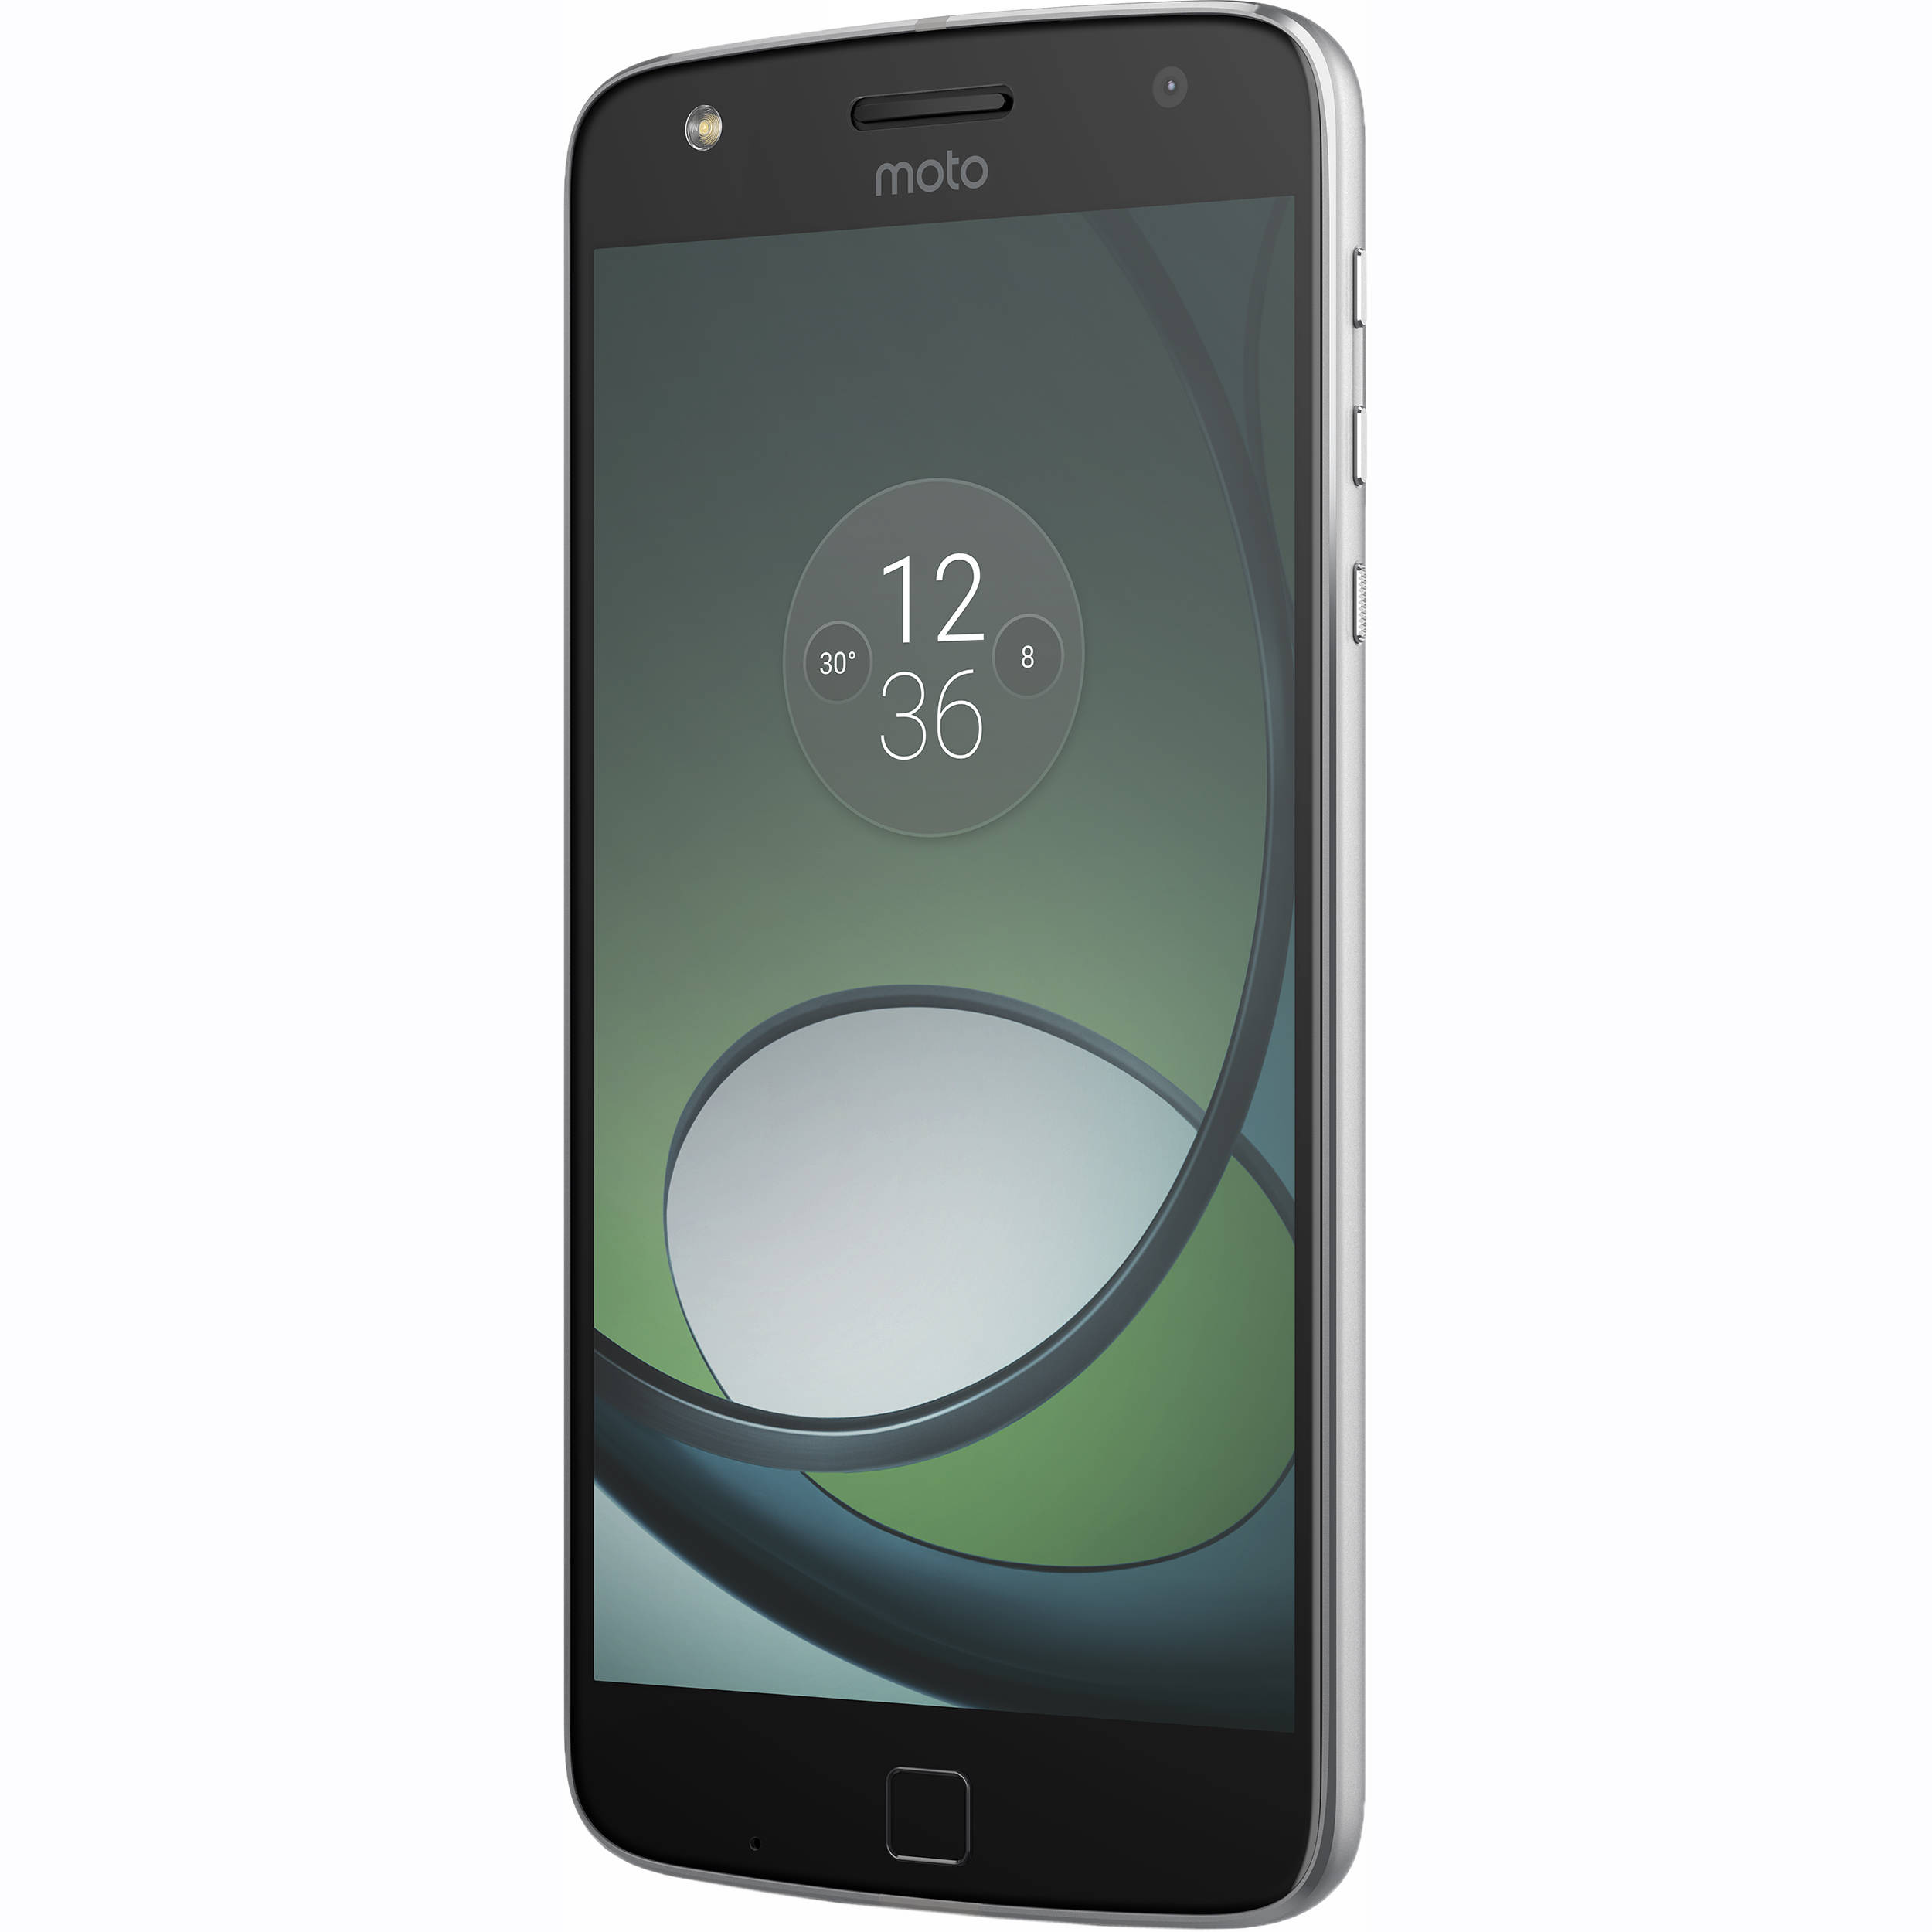 Moto z moto z play now available in india price specifications and - Moto Moto Z Play Xt1635 02 32gb Smartphone Unlocked Lunar Gray